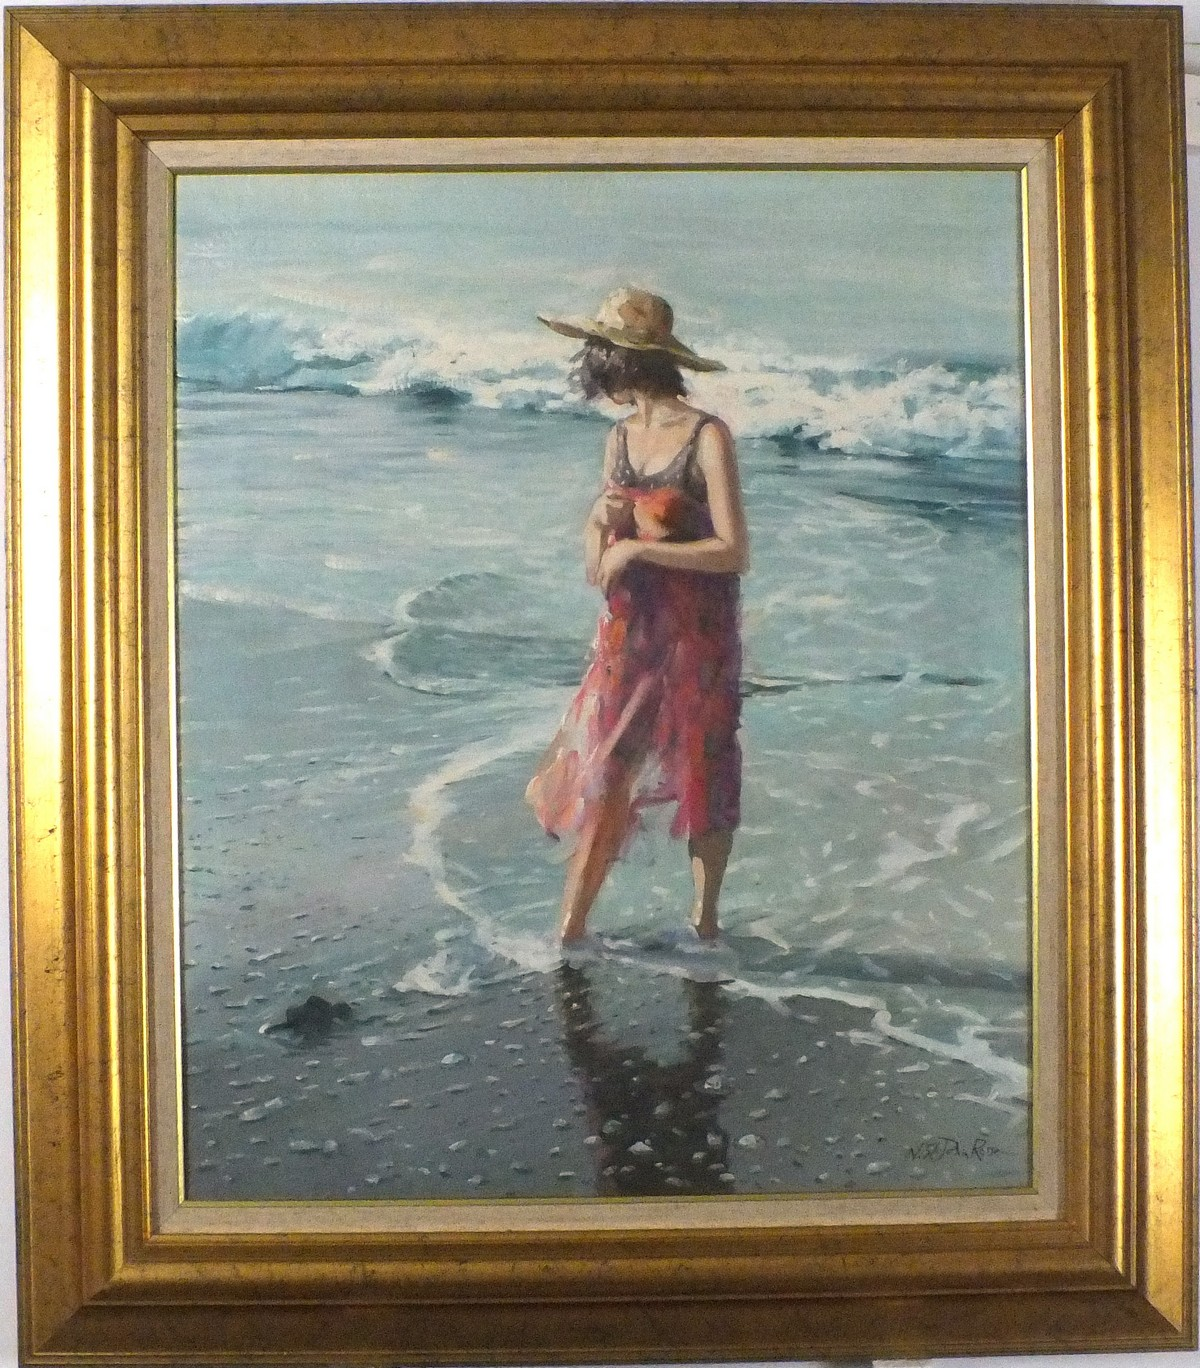 Lot 20 - * Nicholas St John ROSSE (b.1945), Oil on canvas, Cooling Waters - young woman paddling on a